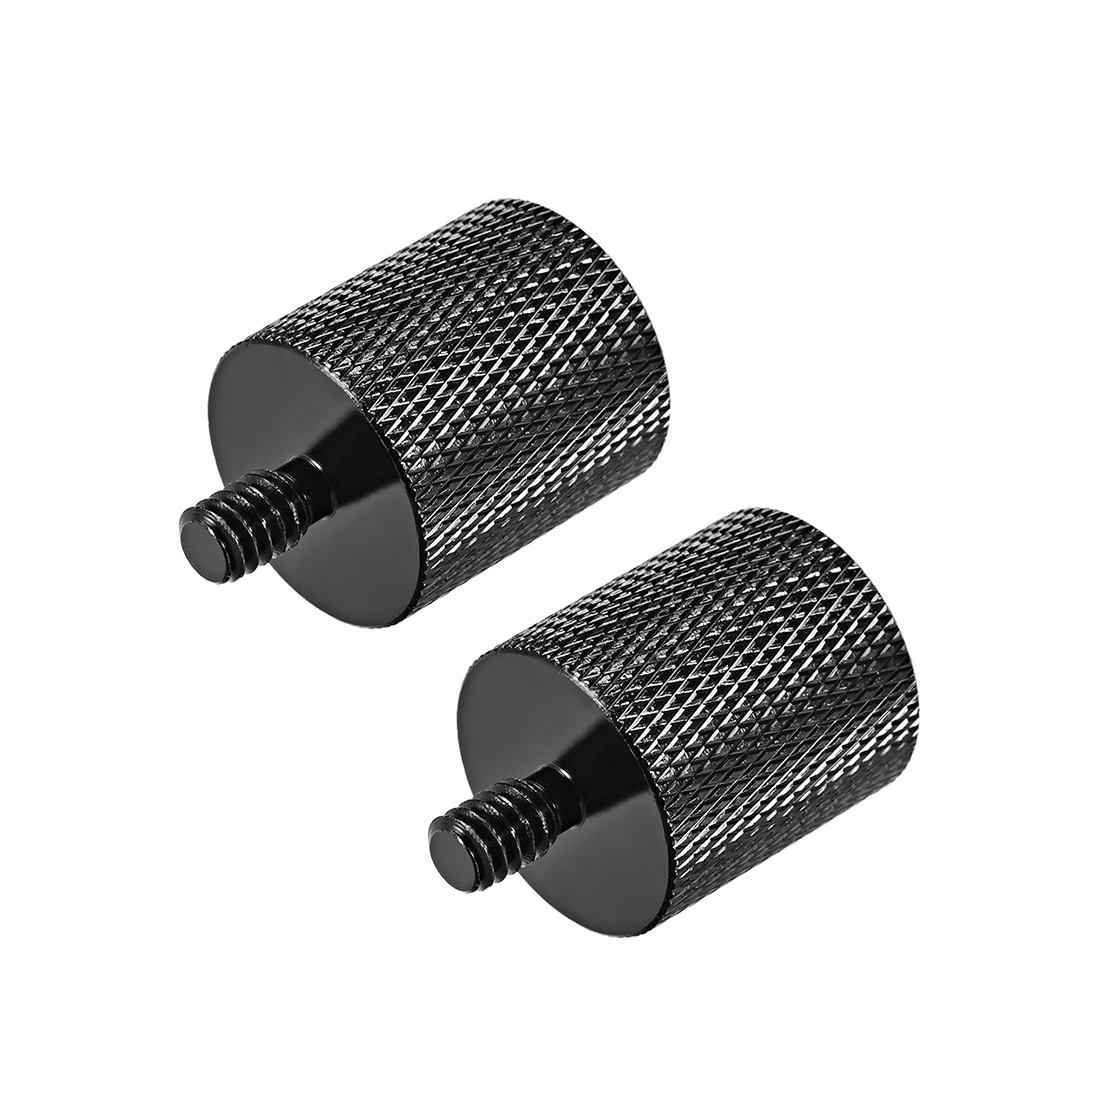 "1/4 Male To 5/8"" Female Threaded Screw Adapter For Microphone Tripod Stand 2pcs"